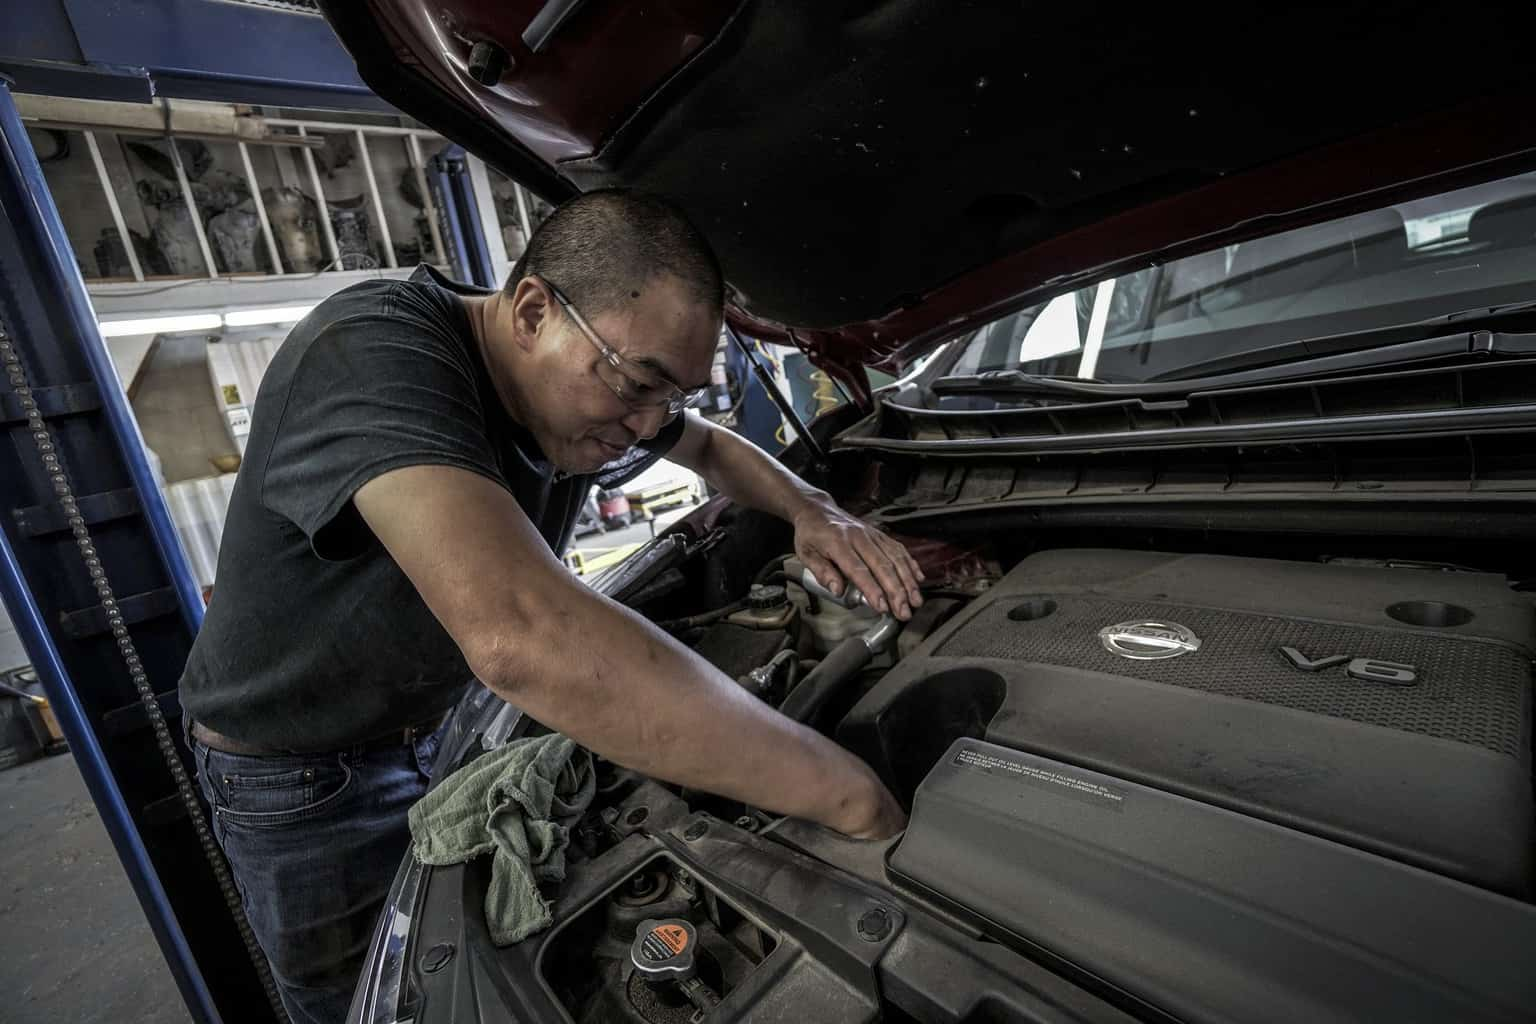 A man changing the oil of a car